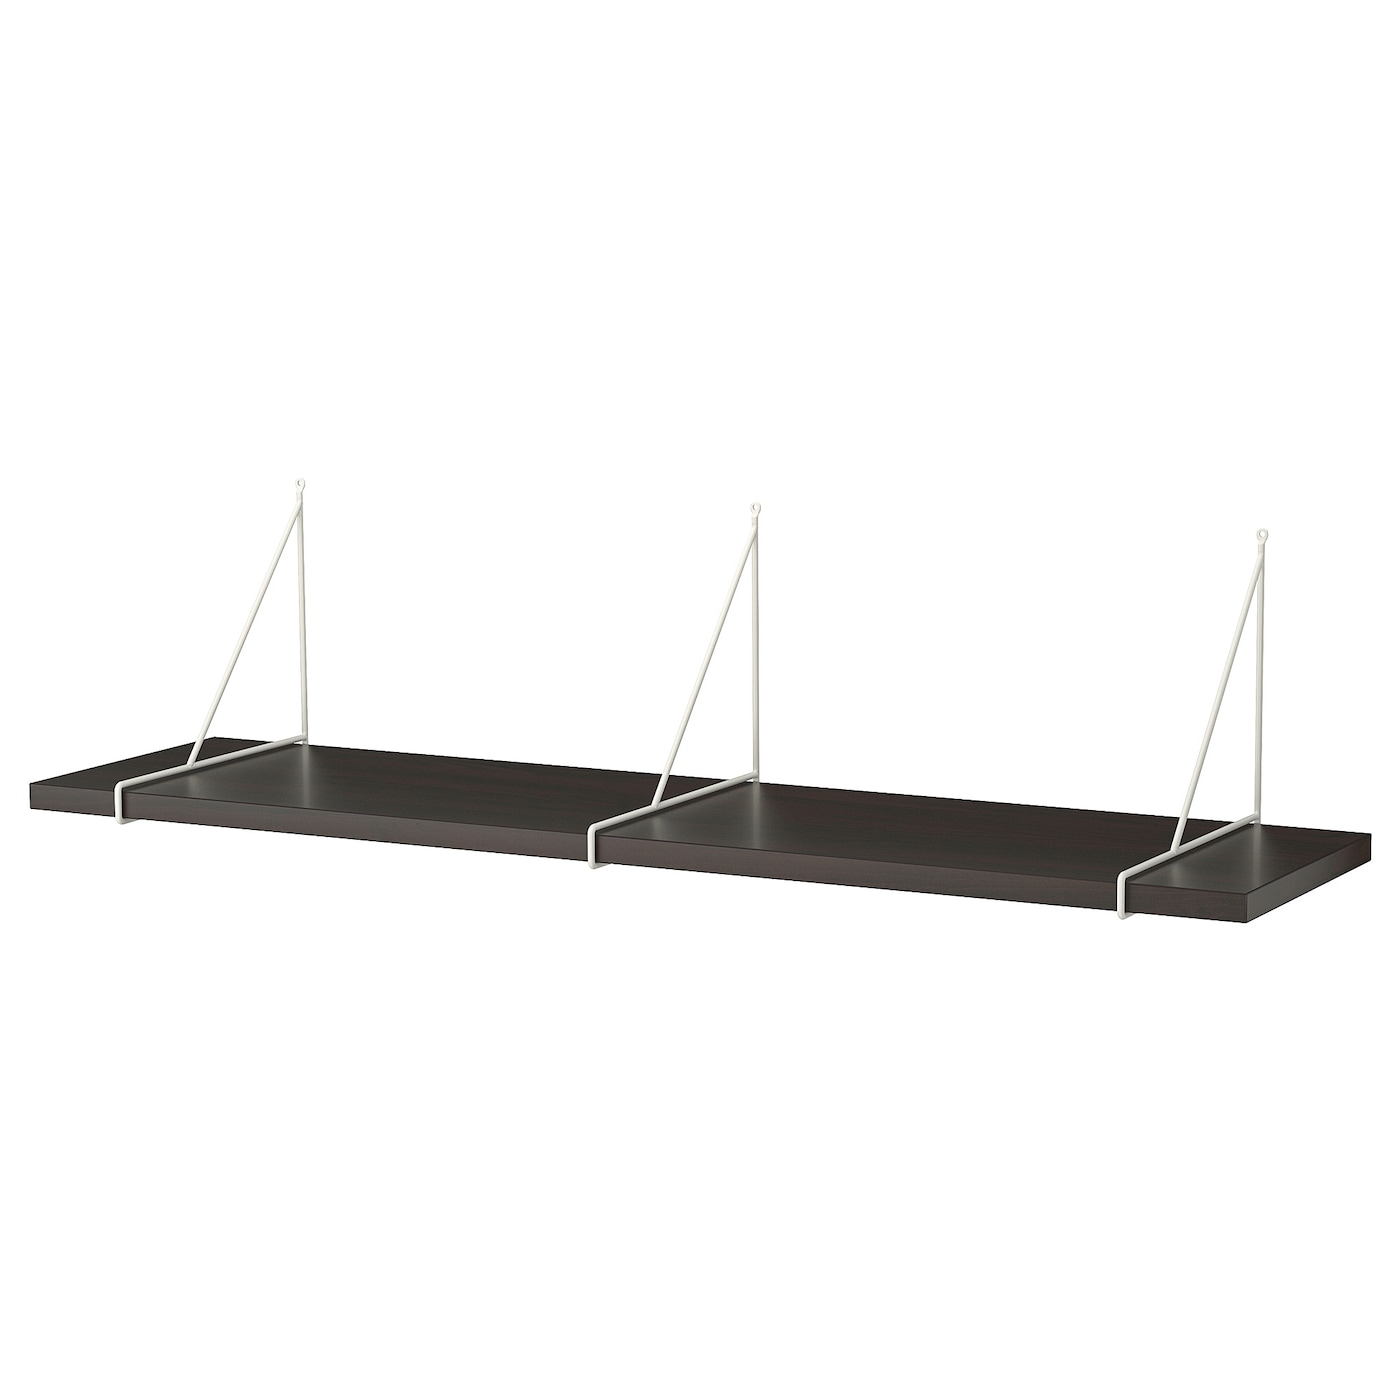 BERGSHULT Mensola, marrone nero, 120x30 cm IKEA IT